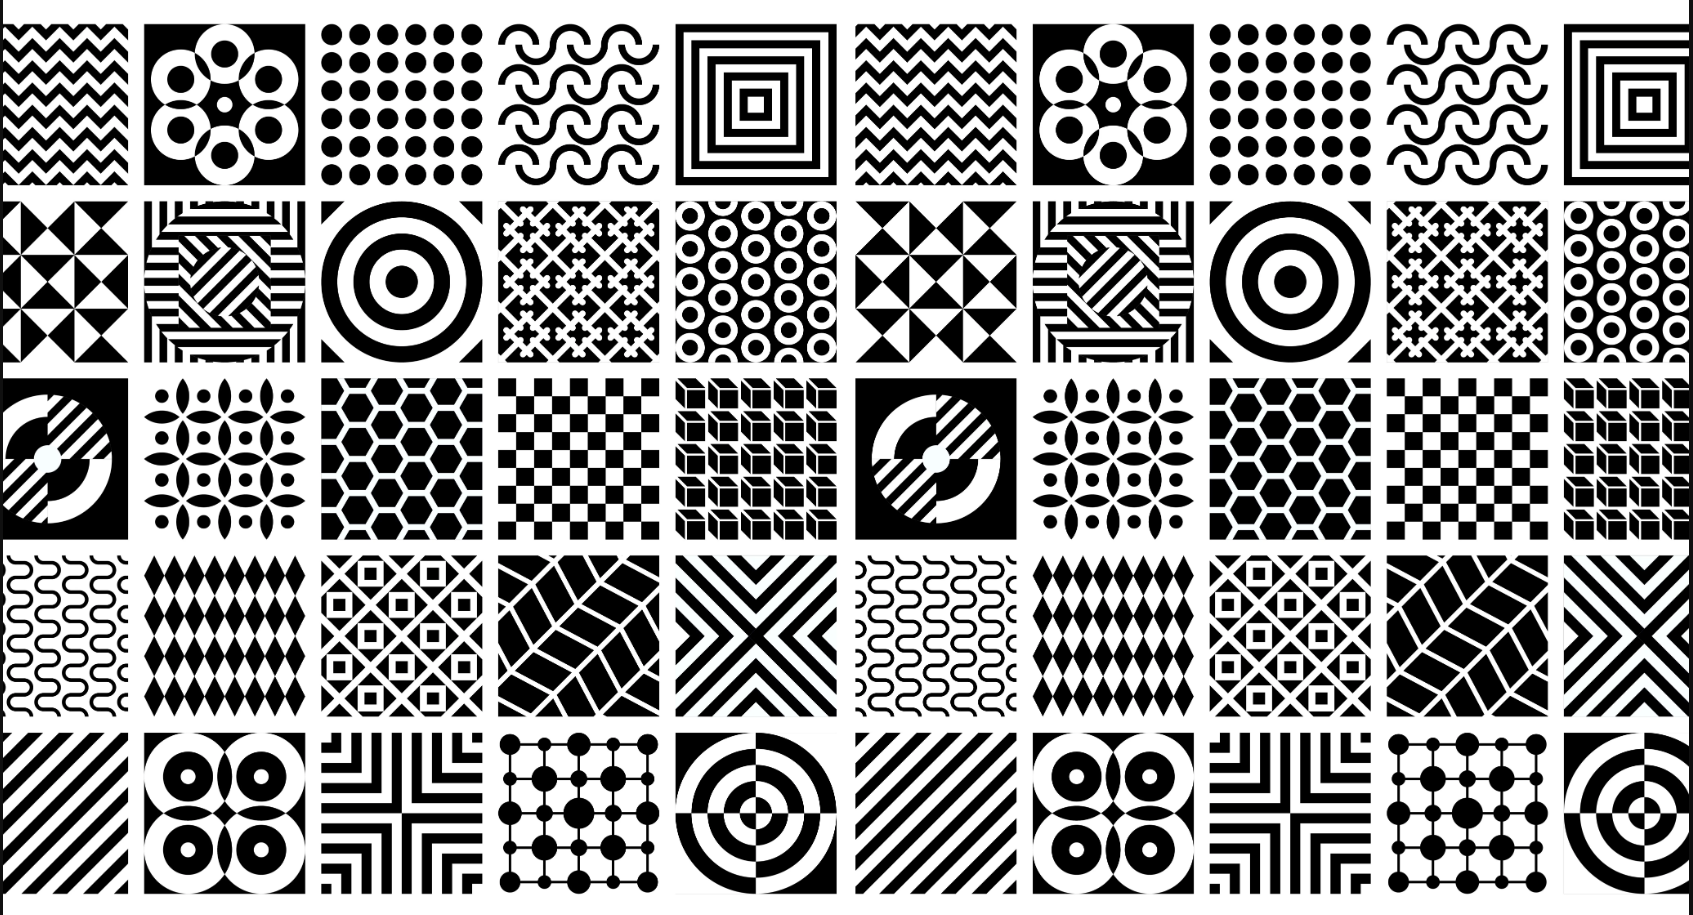 50-stunningly-beautiful-geometric-patterns-in-graphic-design.png